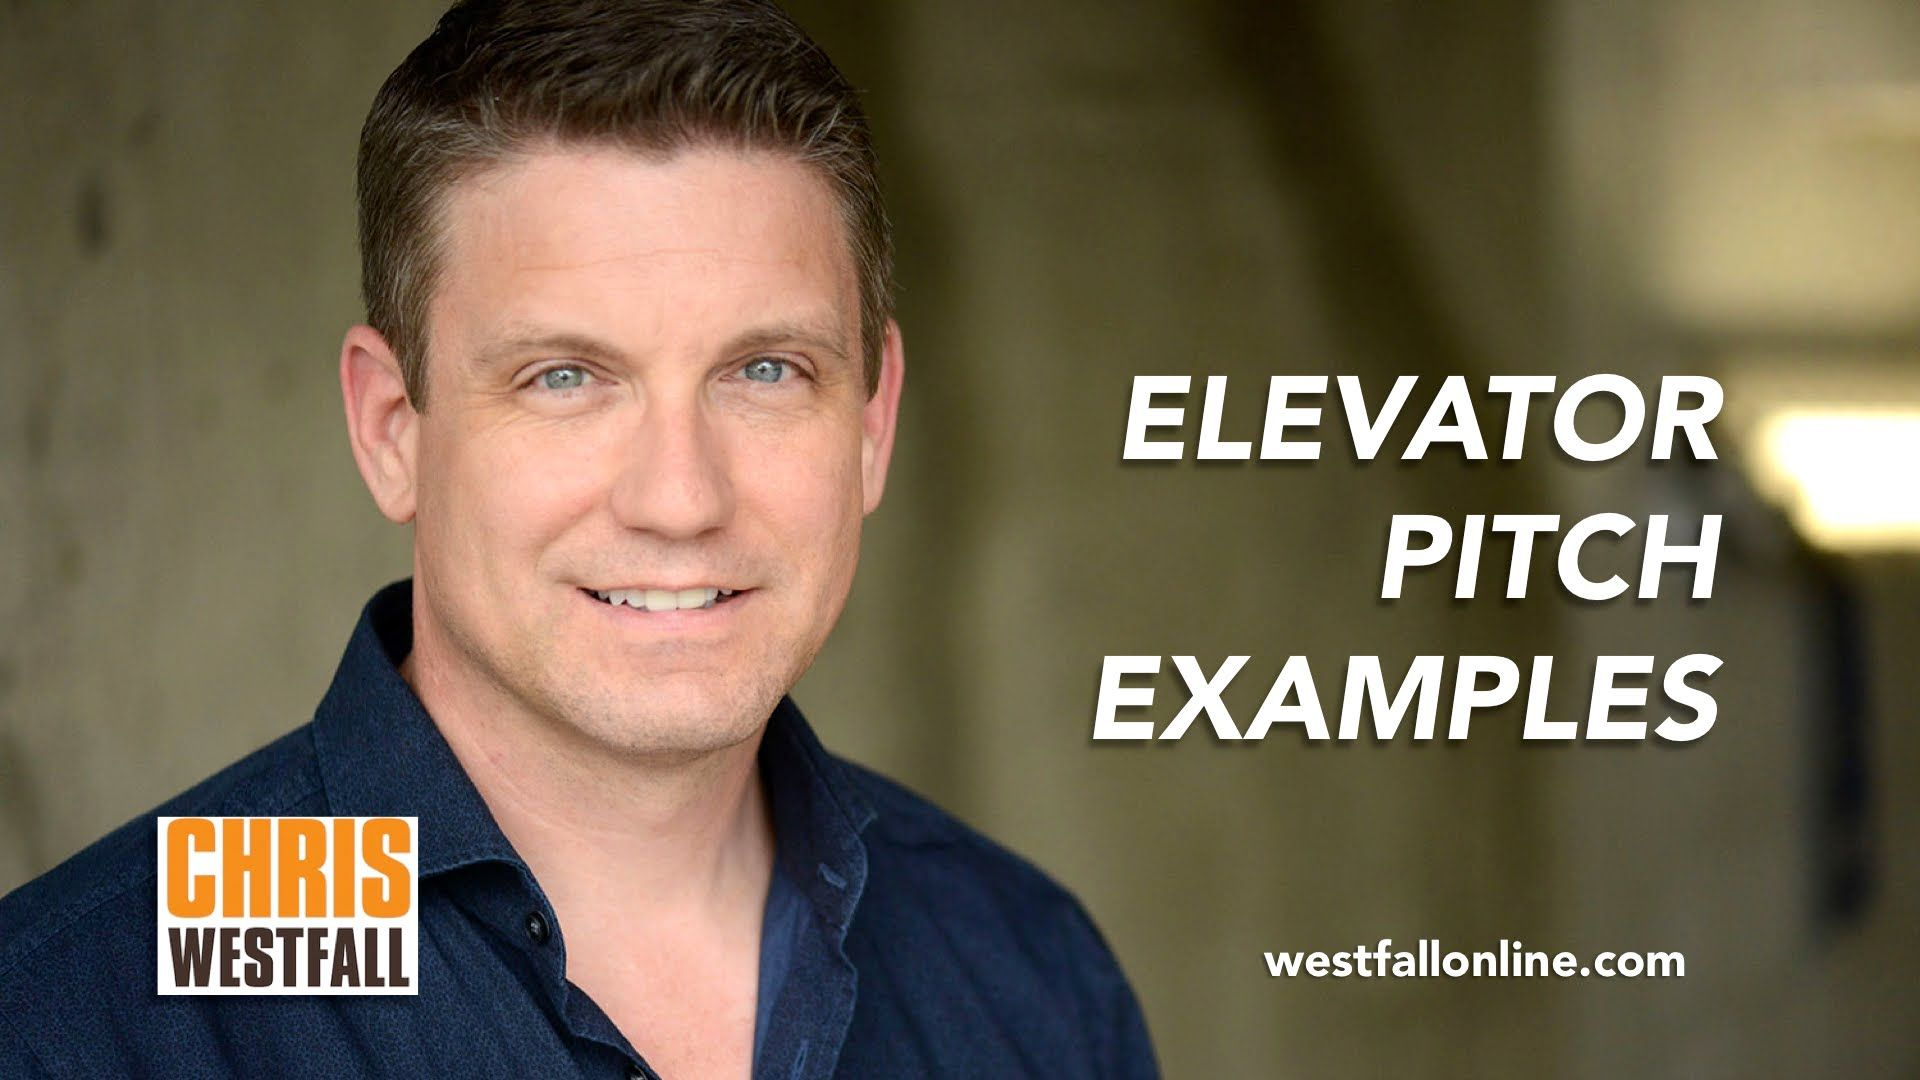 Elevator Pitch Examples With Chris Westfall  Plp